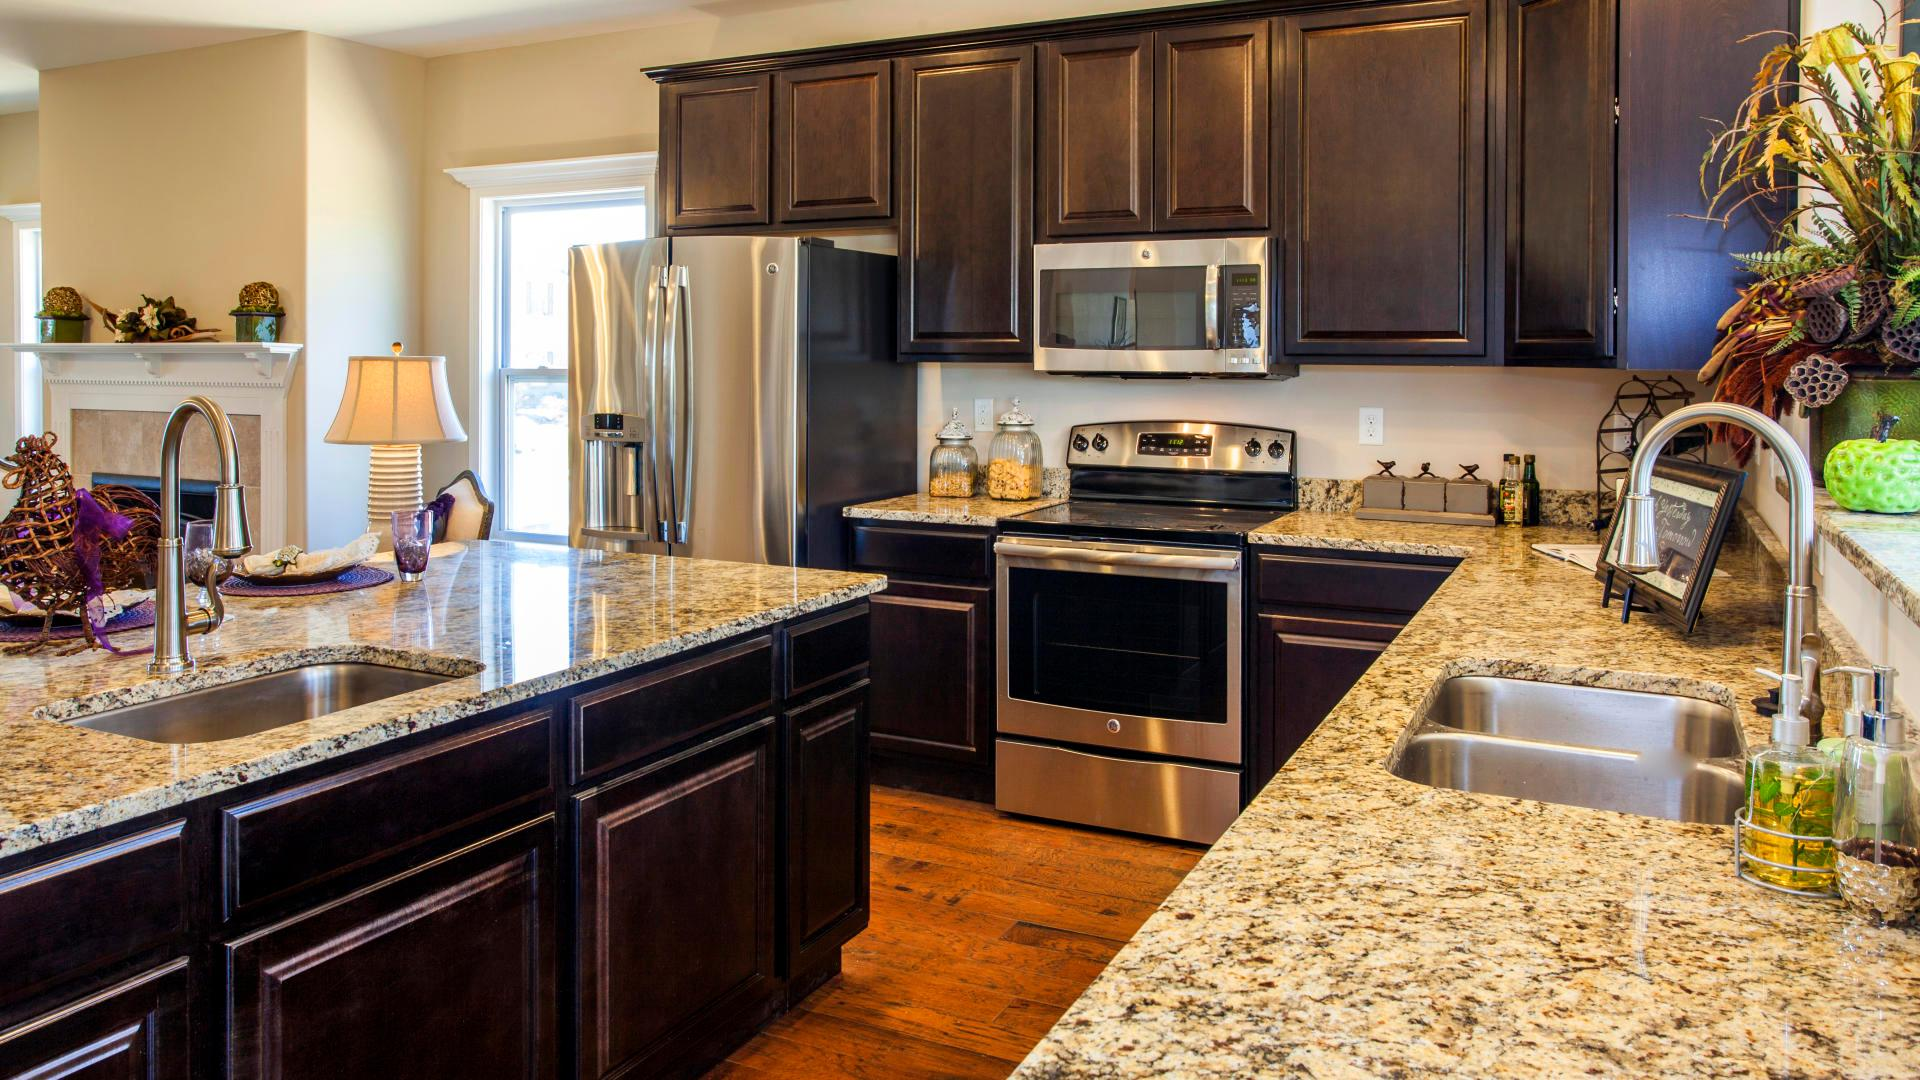 Kitchen featured in the Newbury By Maronda Homes in Columbus, OH